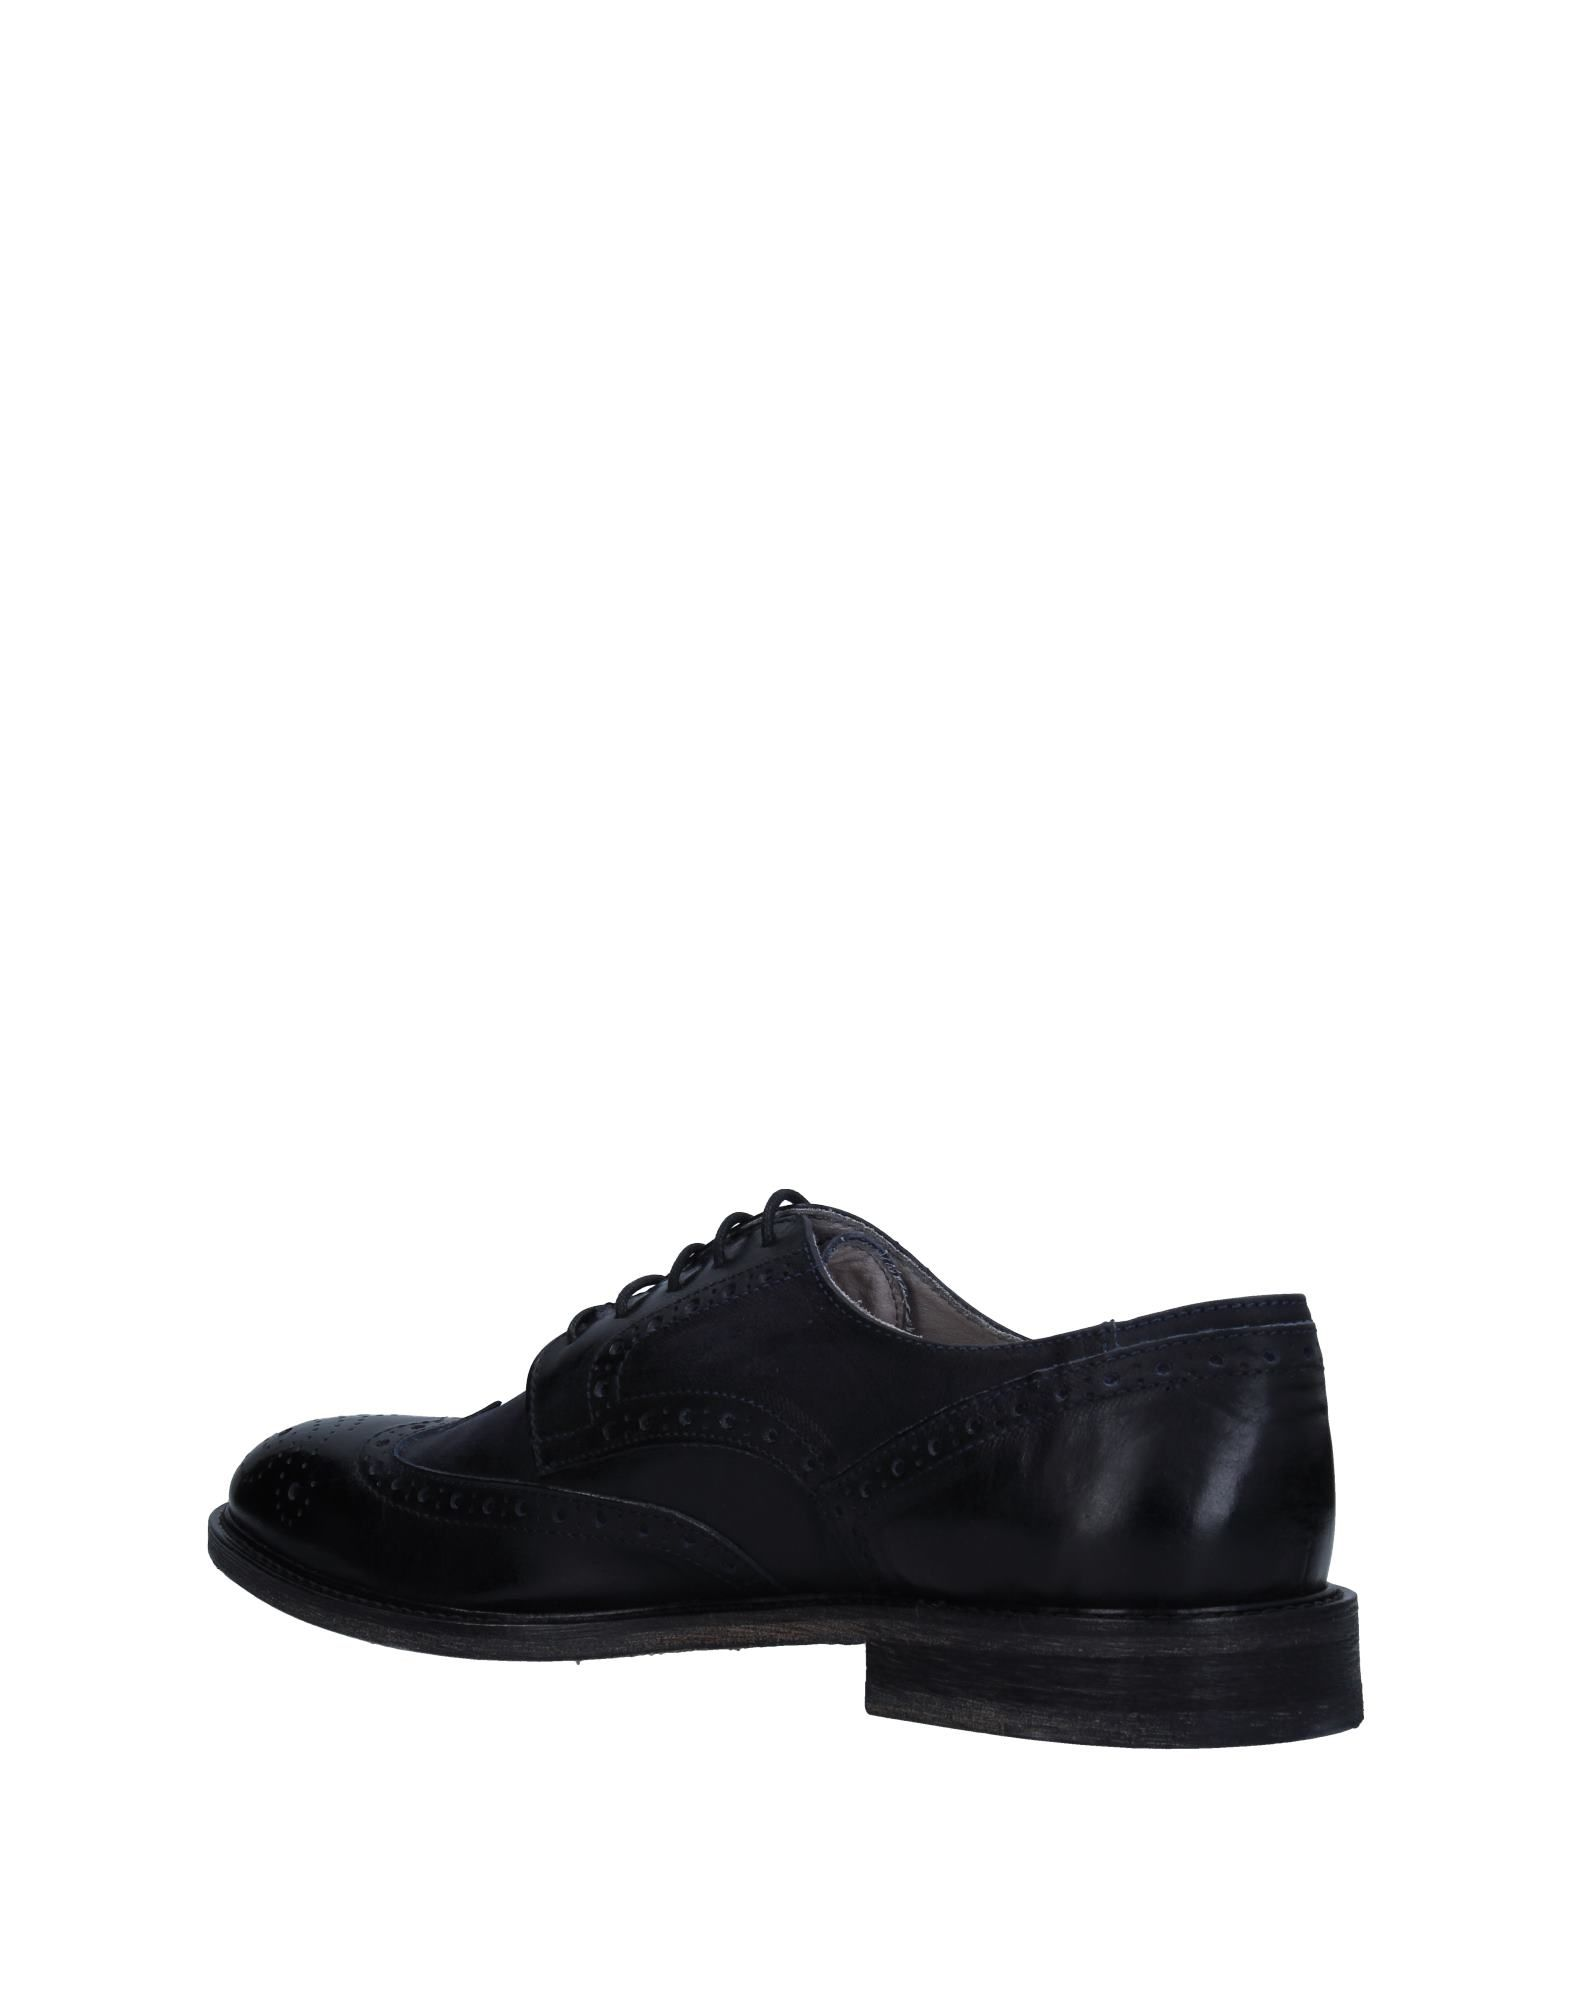 Chaussures - Chaussures À Lacets Luca Rossi LNKhnLGcn